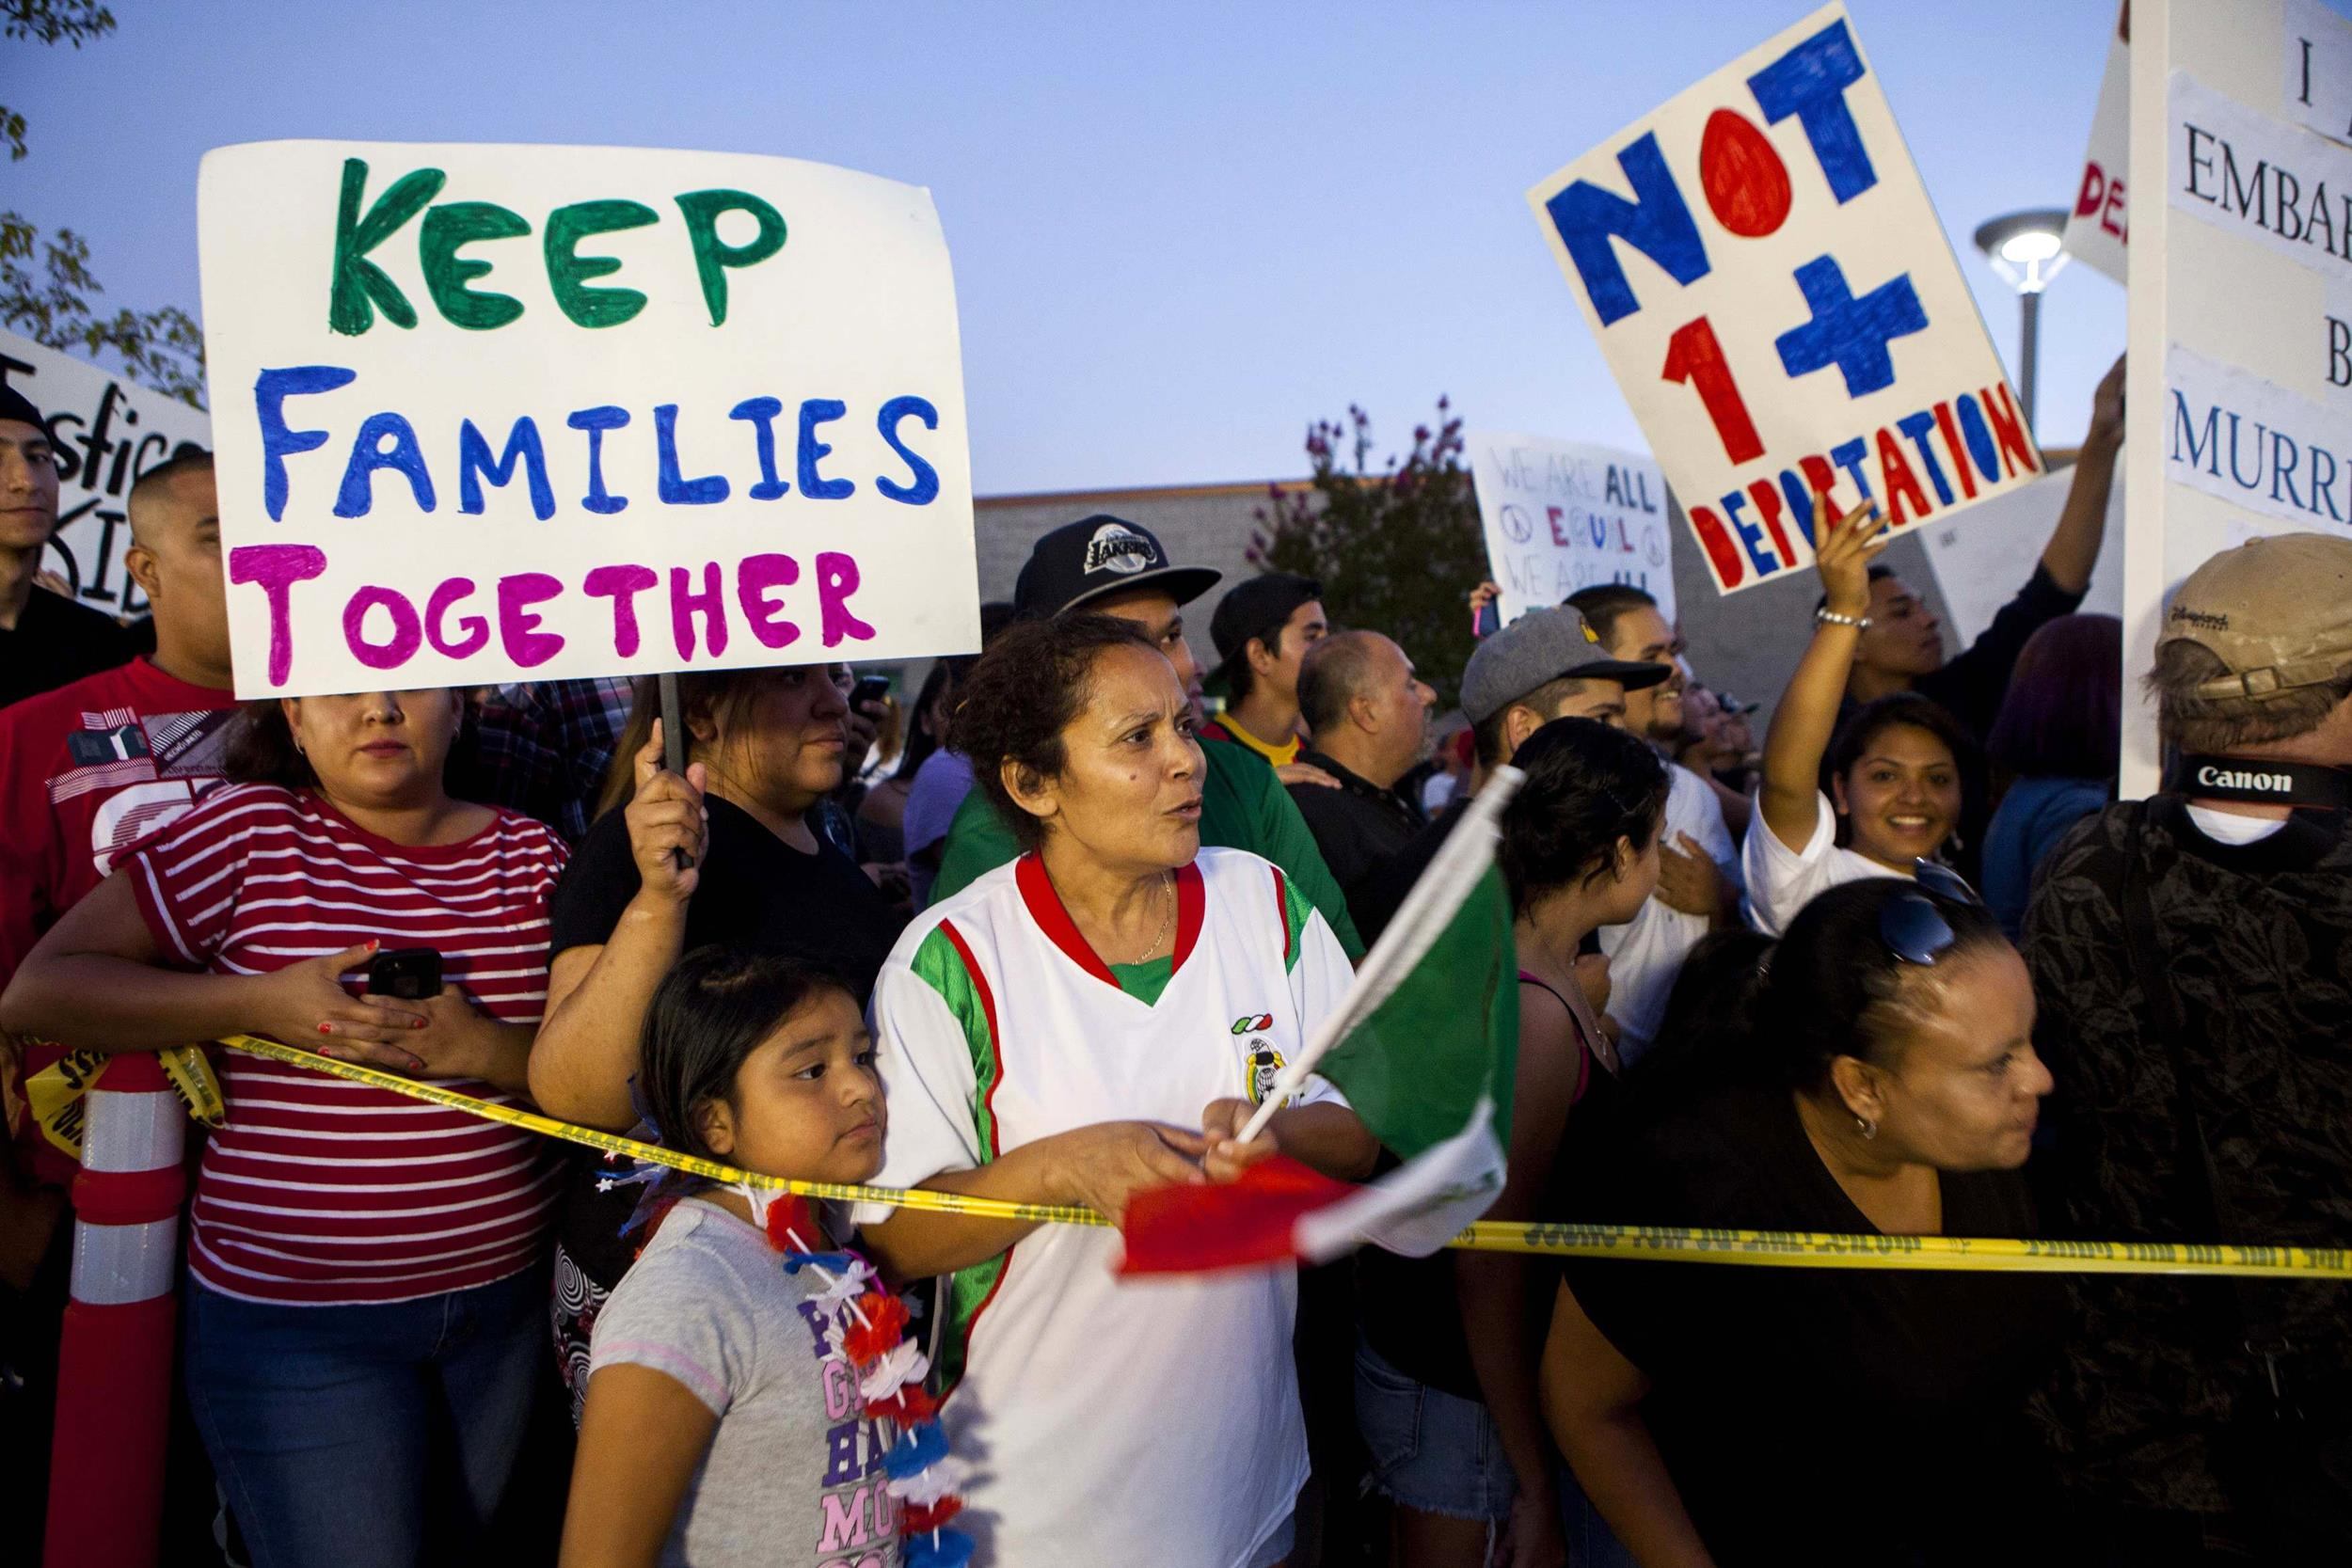 Image: Residents and protestors attend a town hall meeting to discuss the processing of undocumented immigrants in Murrieta, California